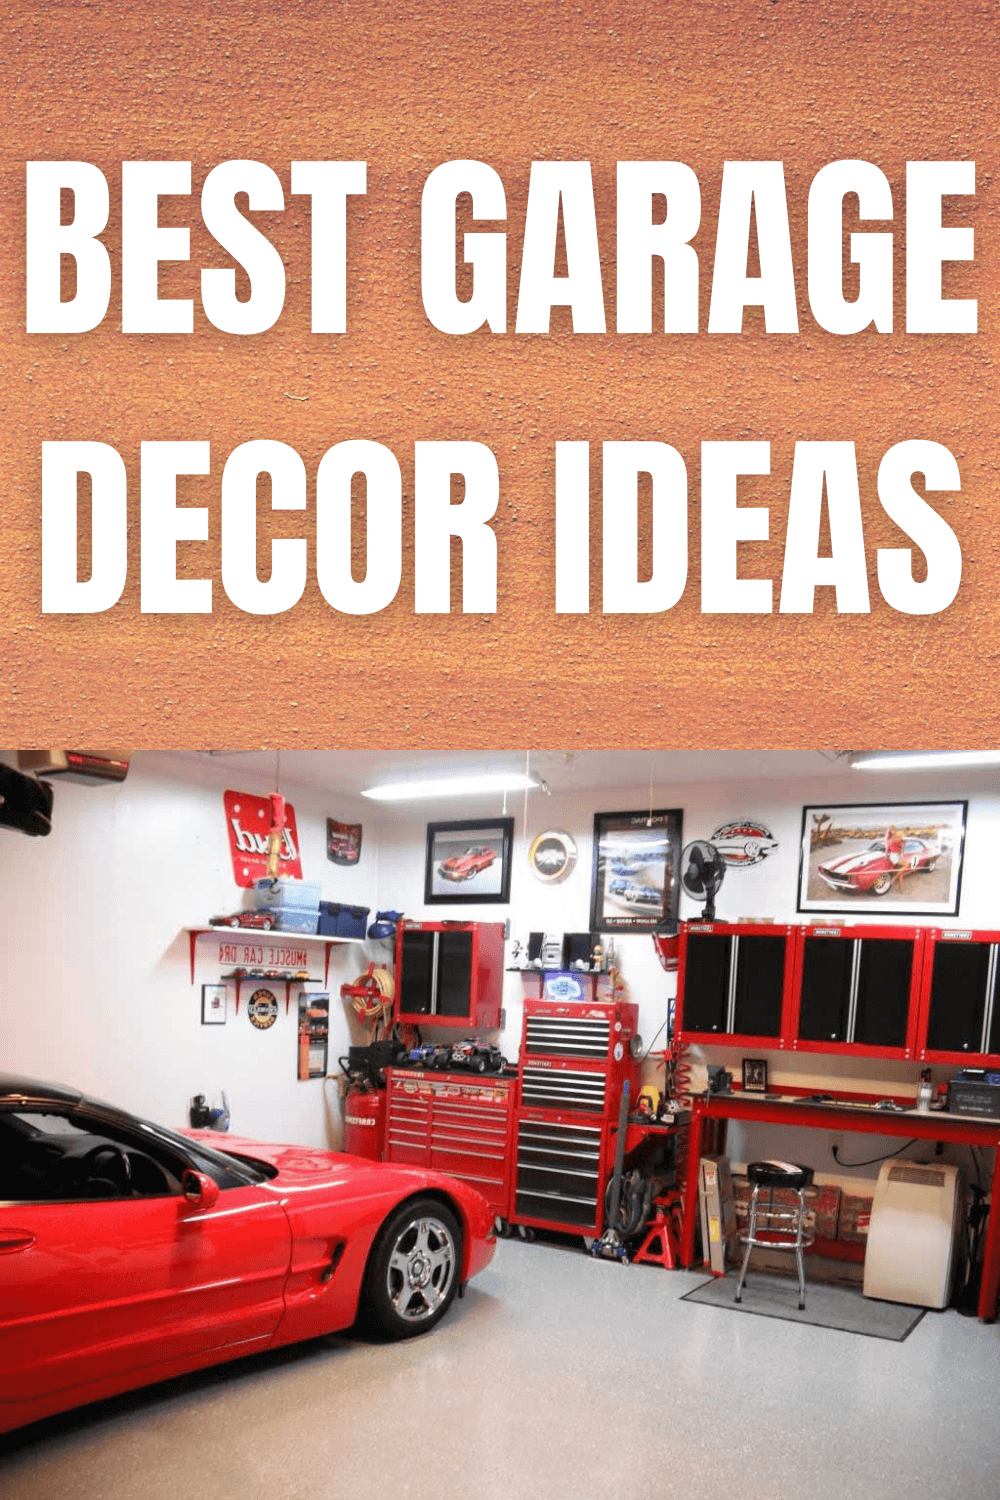 BEST GARAGE DECOR IDEAS